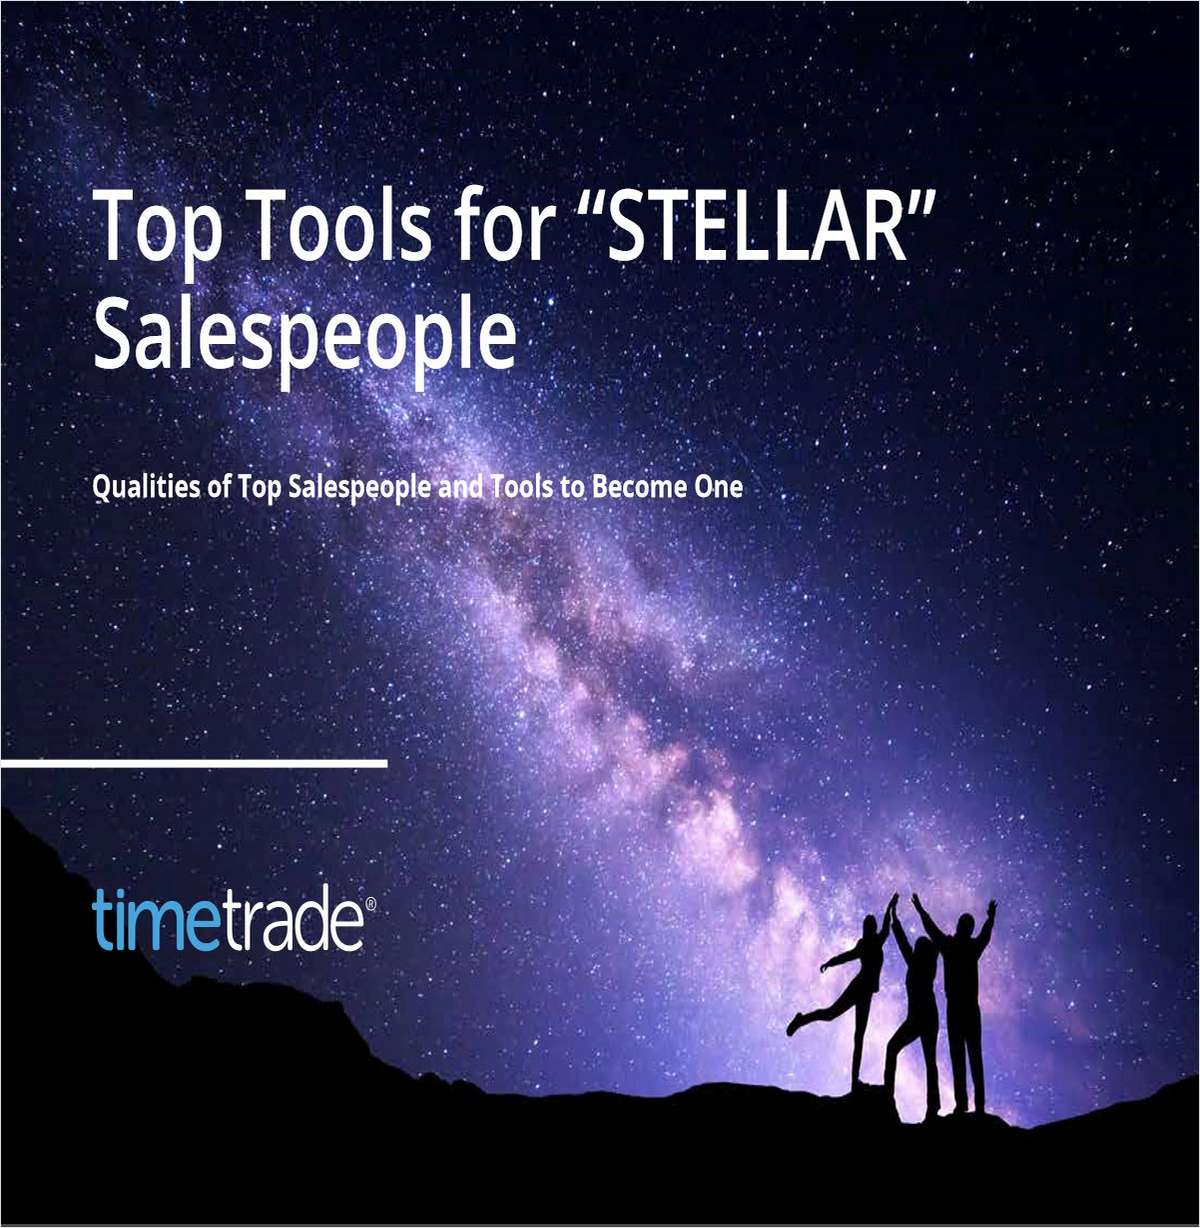 Top Tools for 'STELLAR' Salespeople